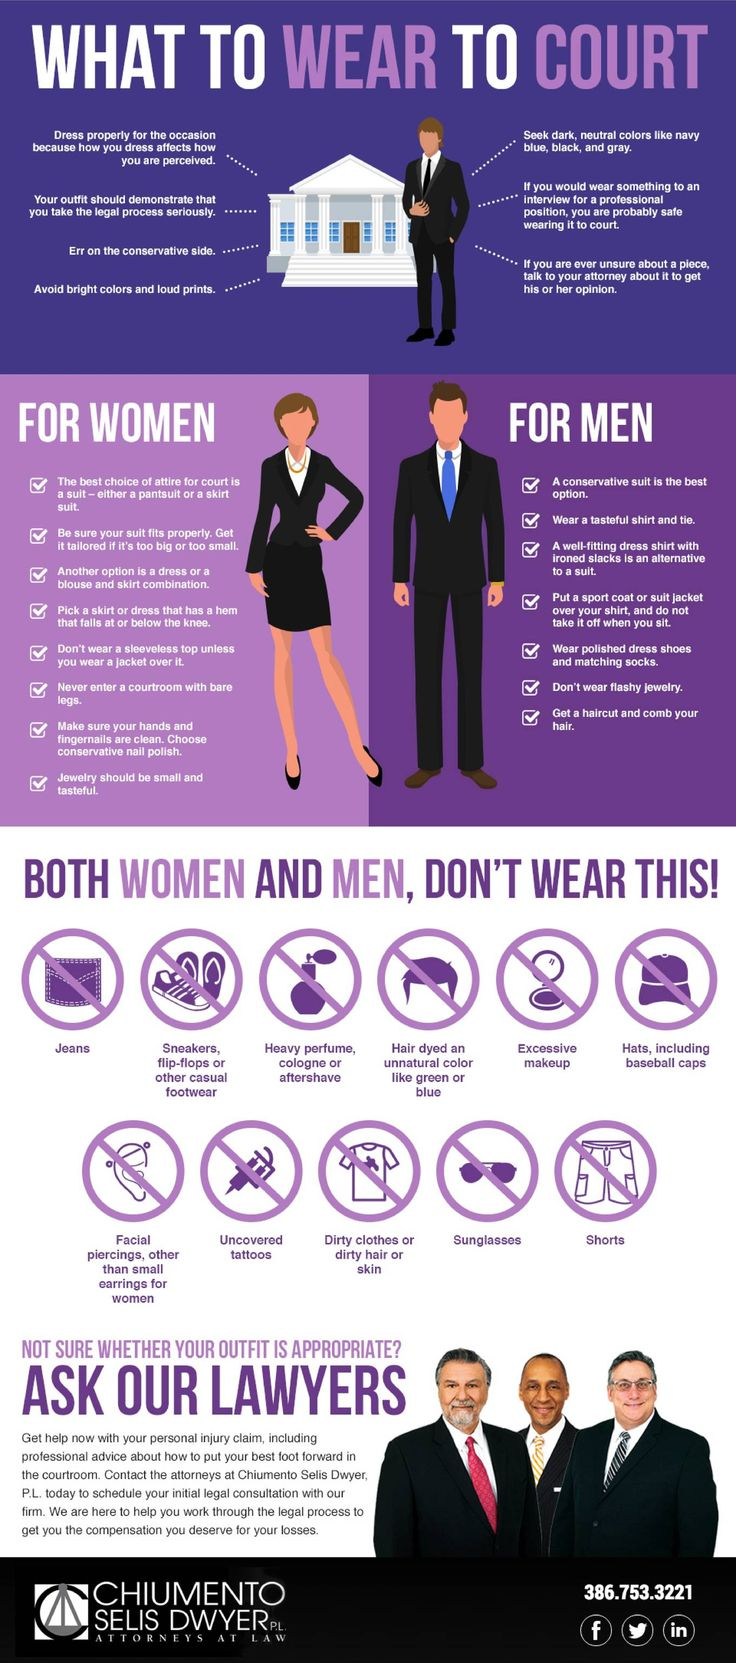 What To Wear To Court A Well Other And Psychology Today